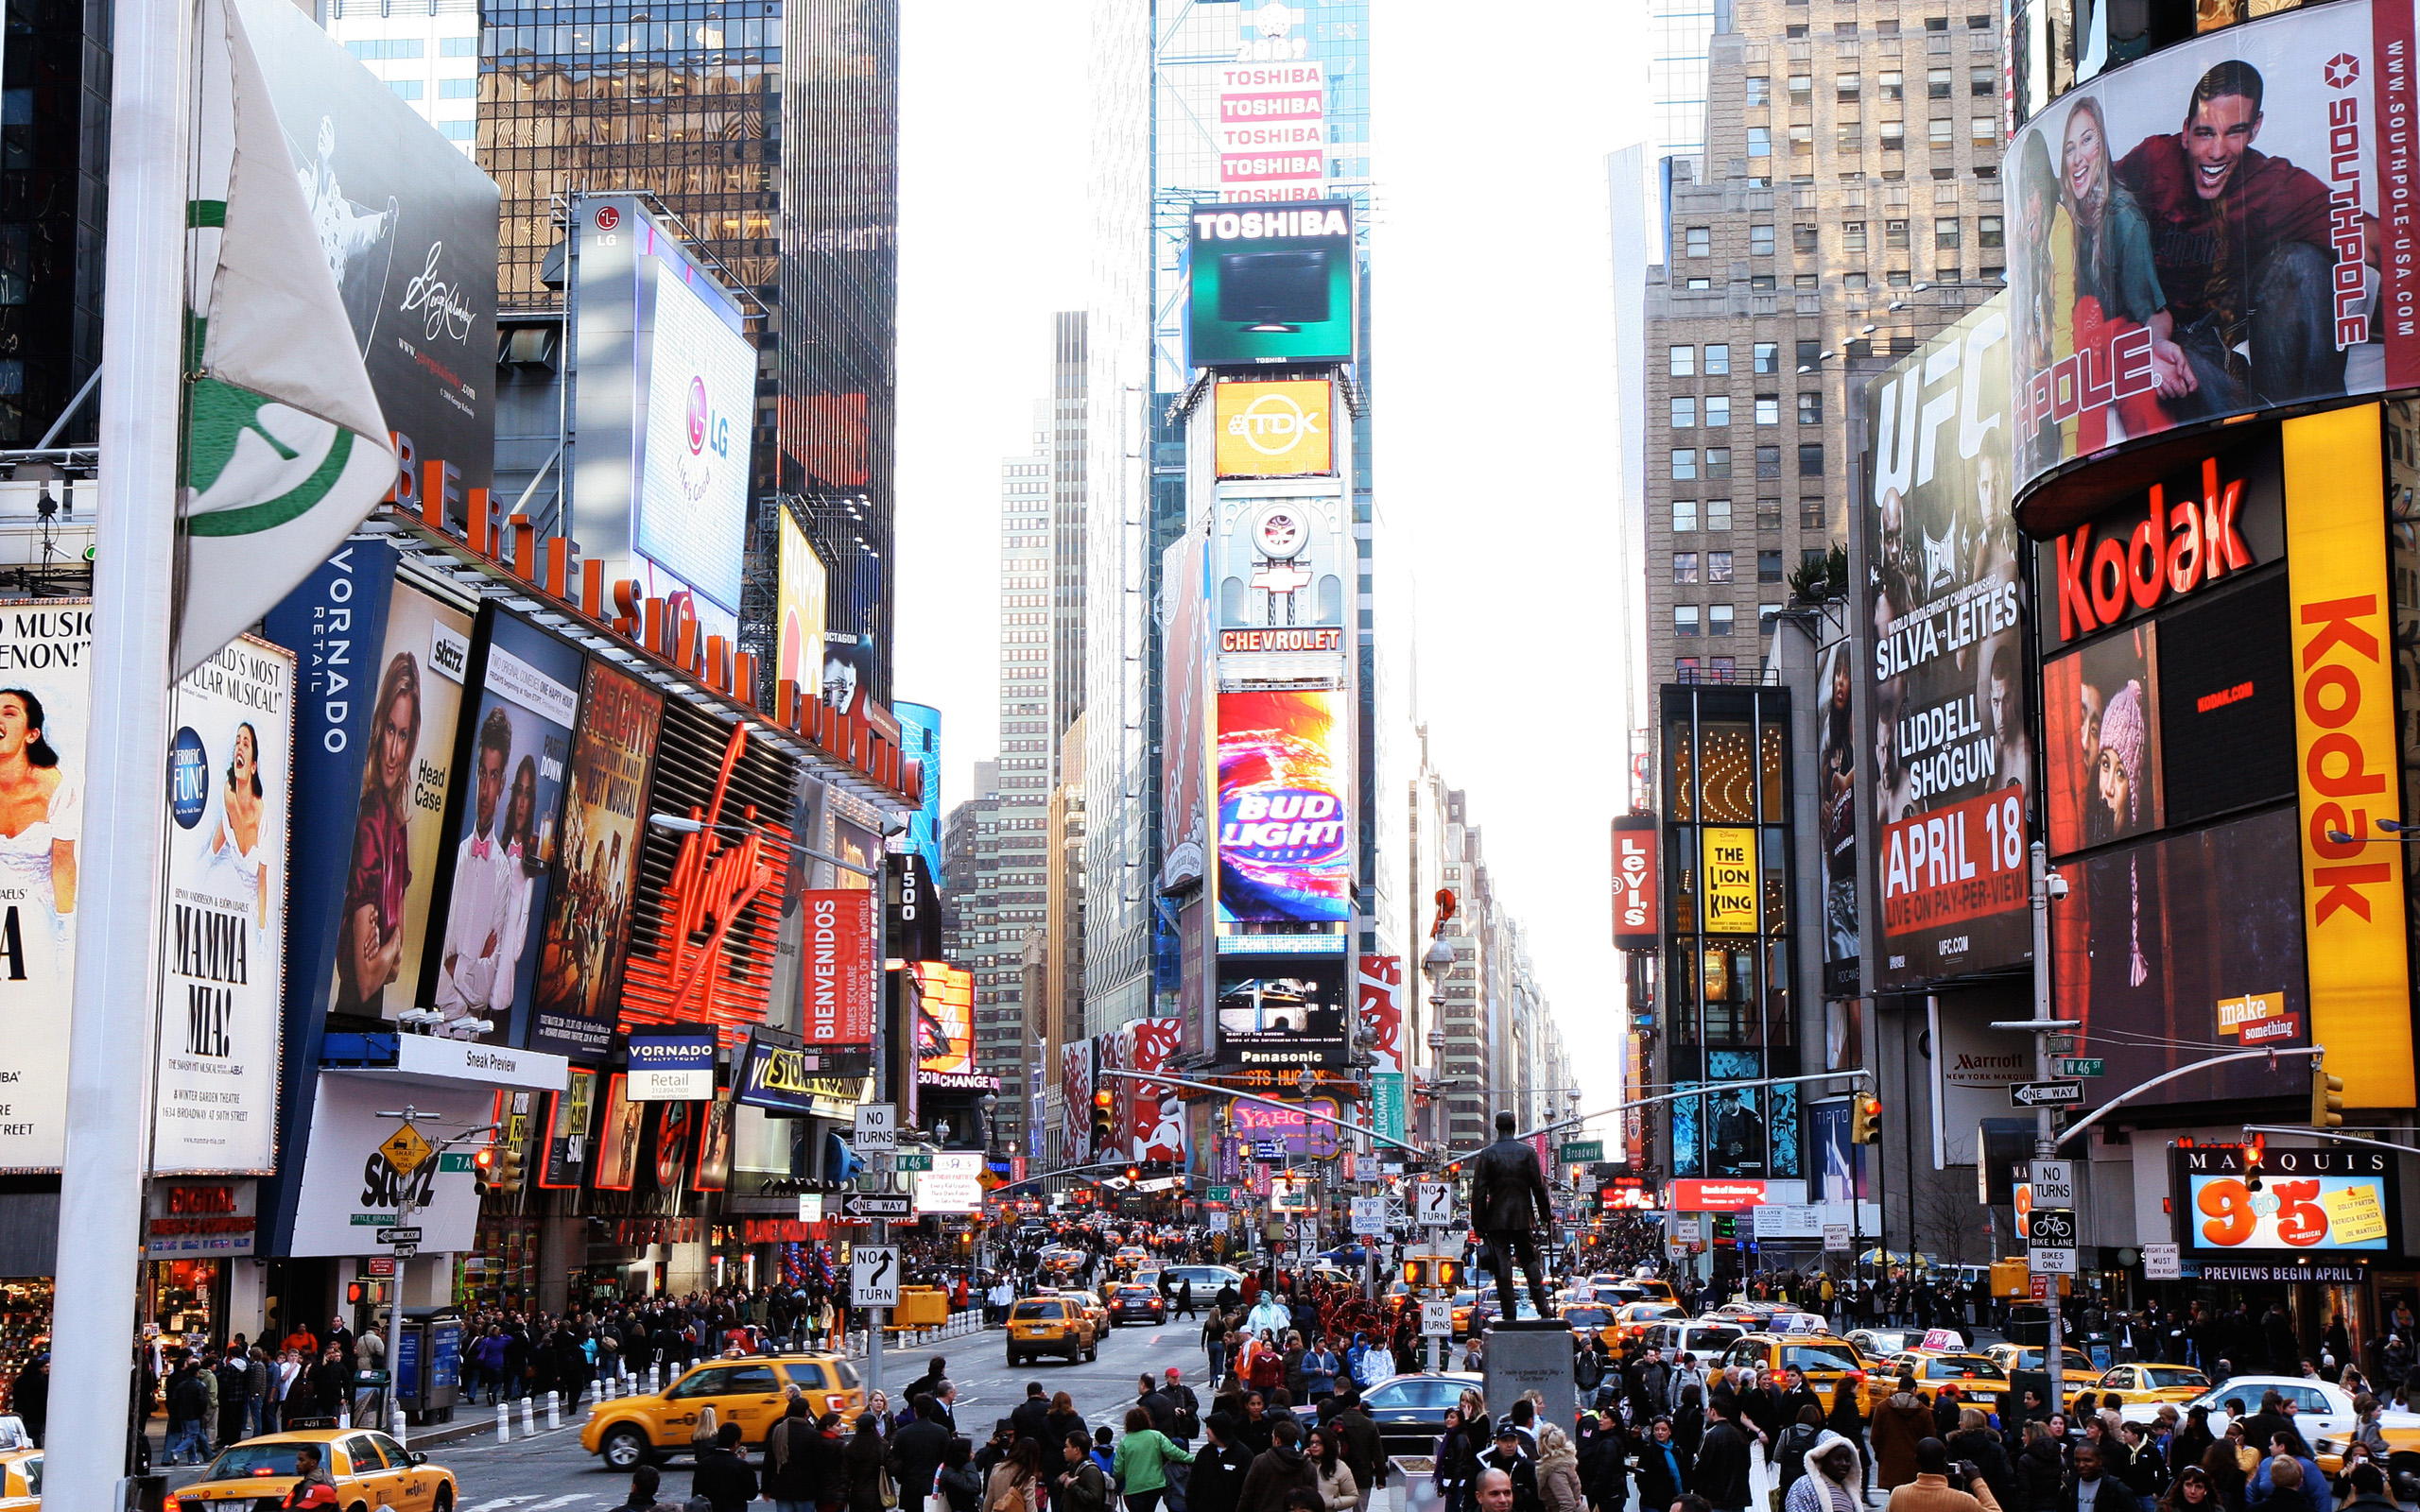 Hotels Downtown Manhattan Times Square